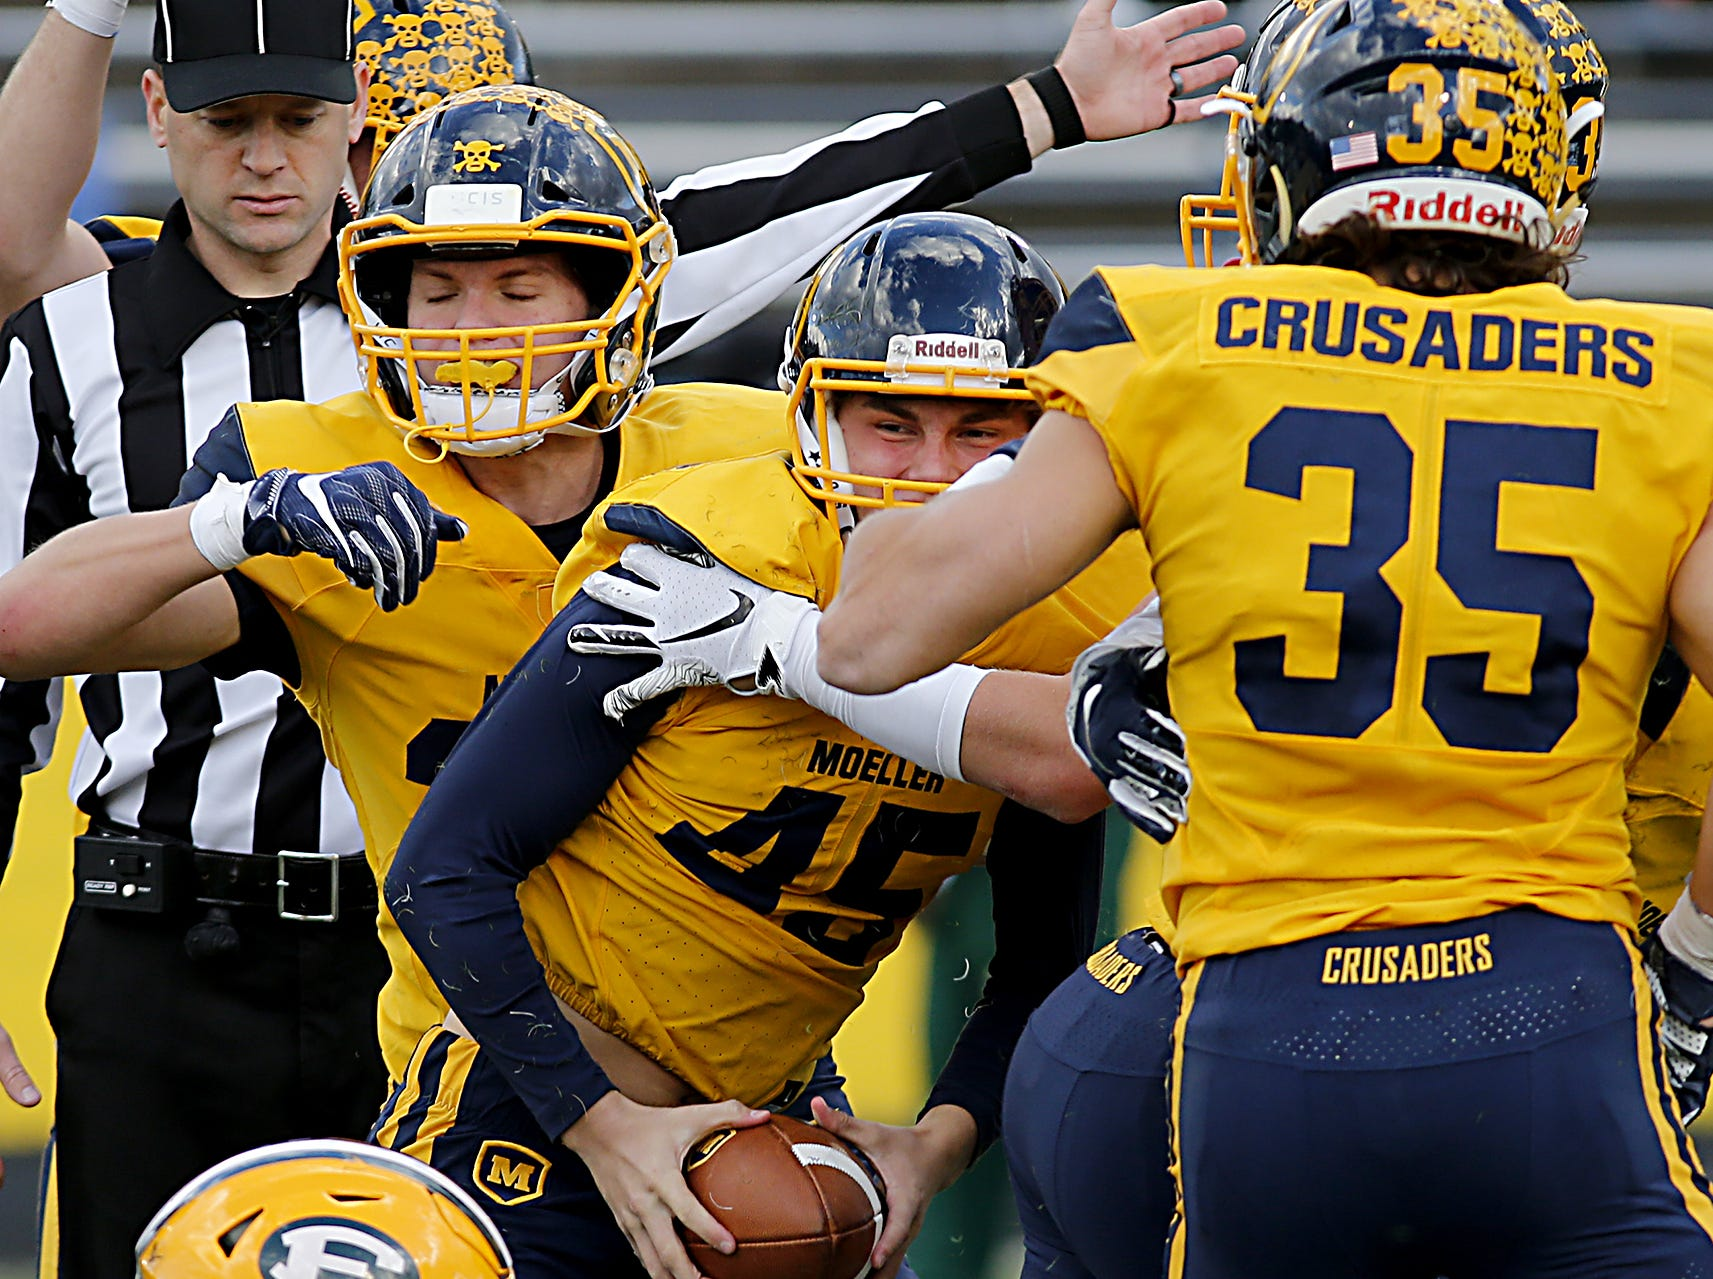 Moeller defensive back Tony Mock recovers a Lakewood St. Edward fumble during their game at Lockland Saturday, Oct. 20, 2018.